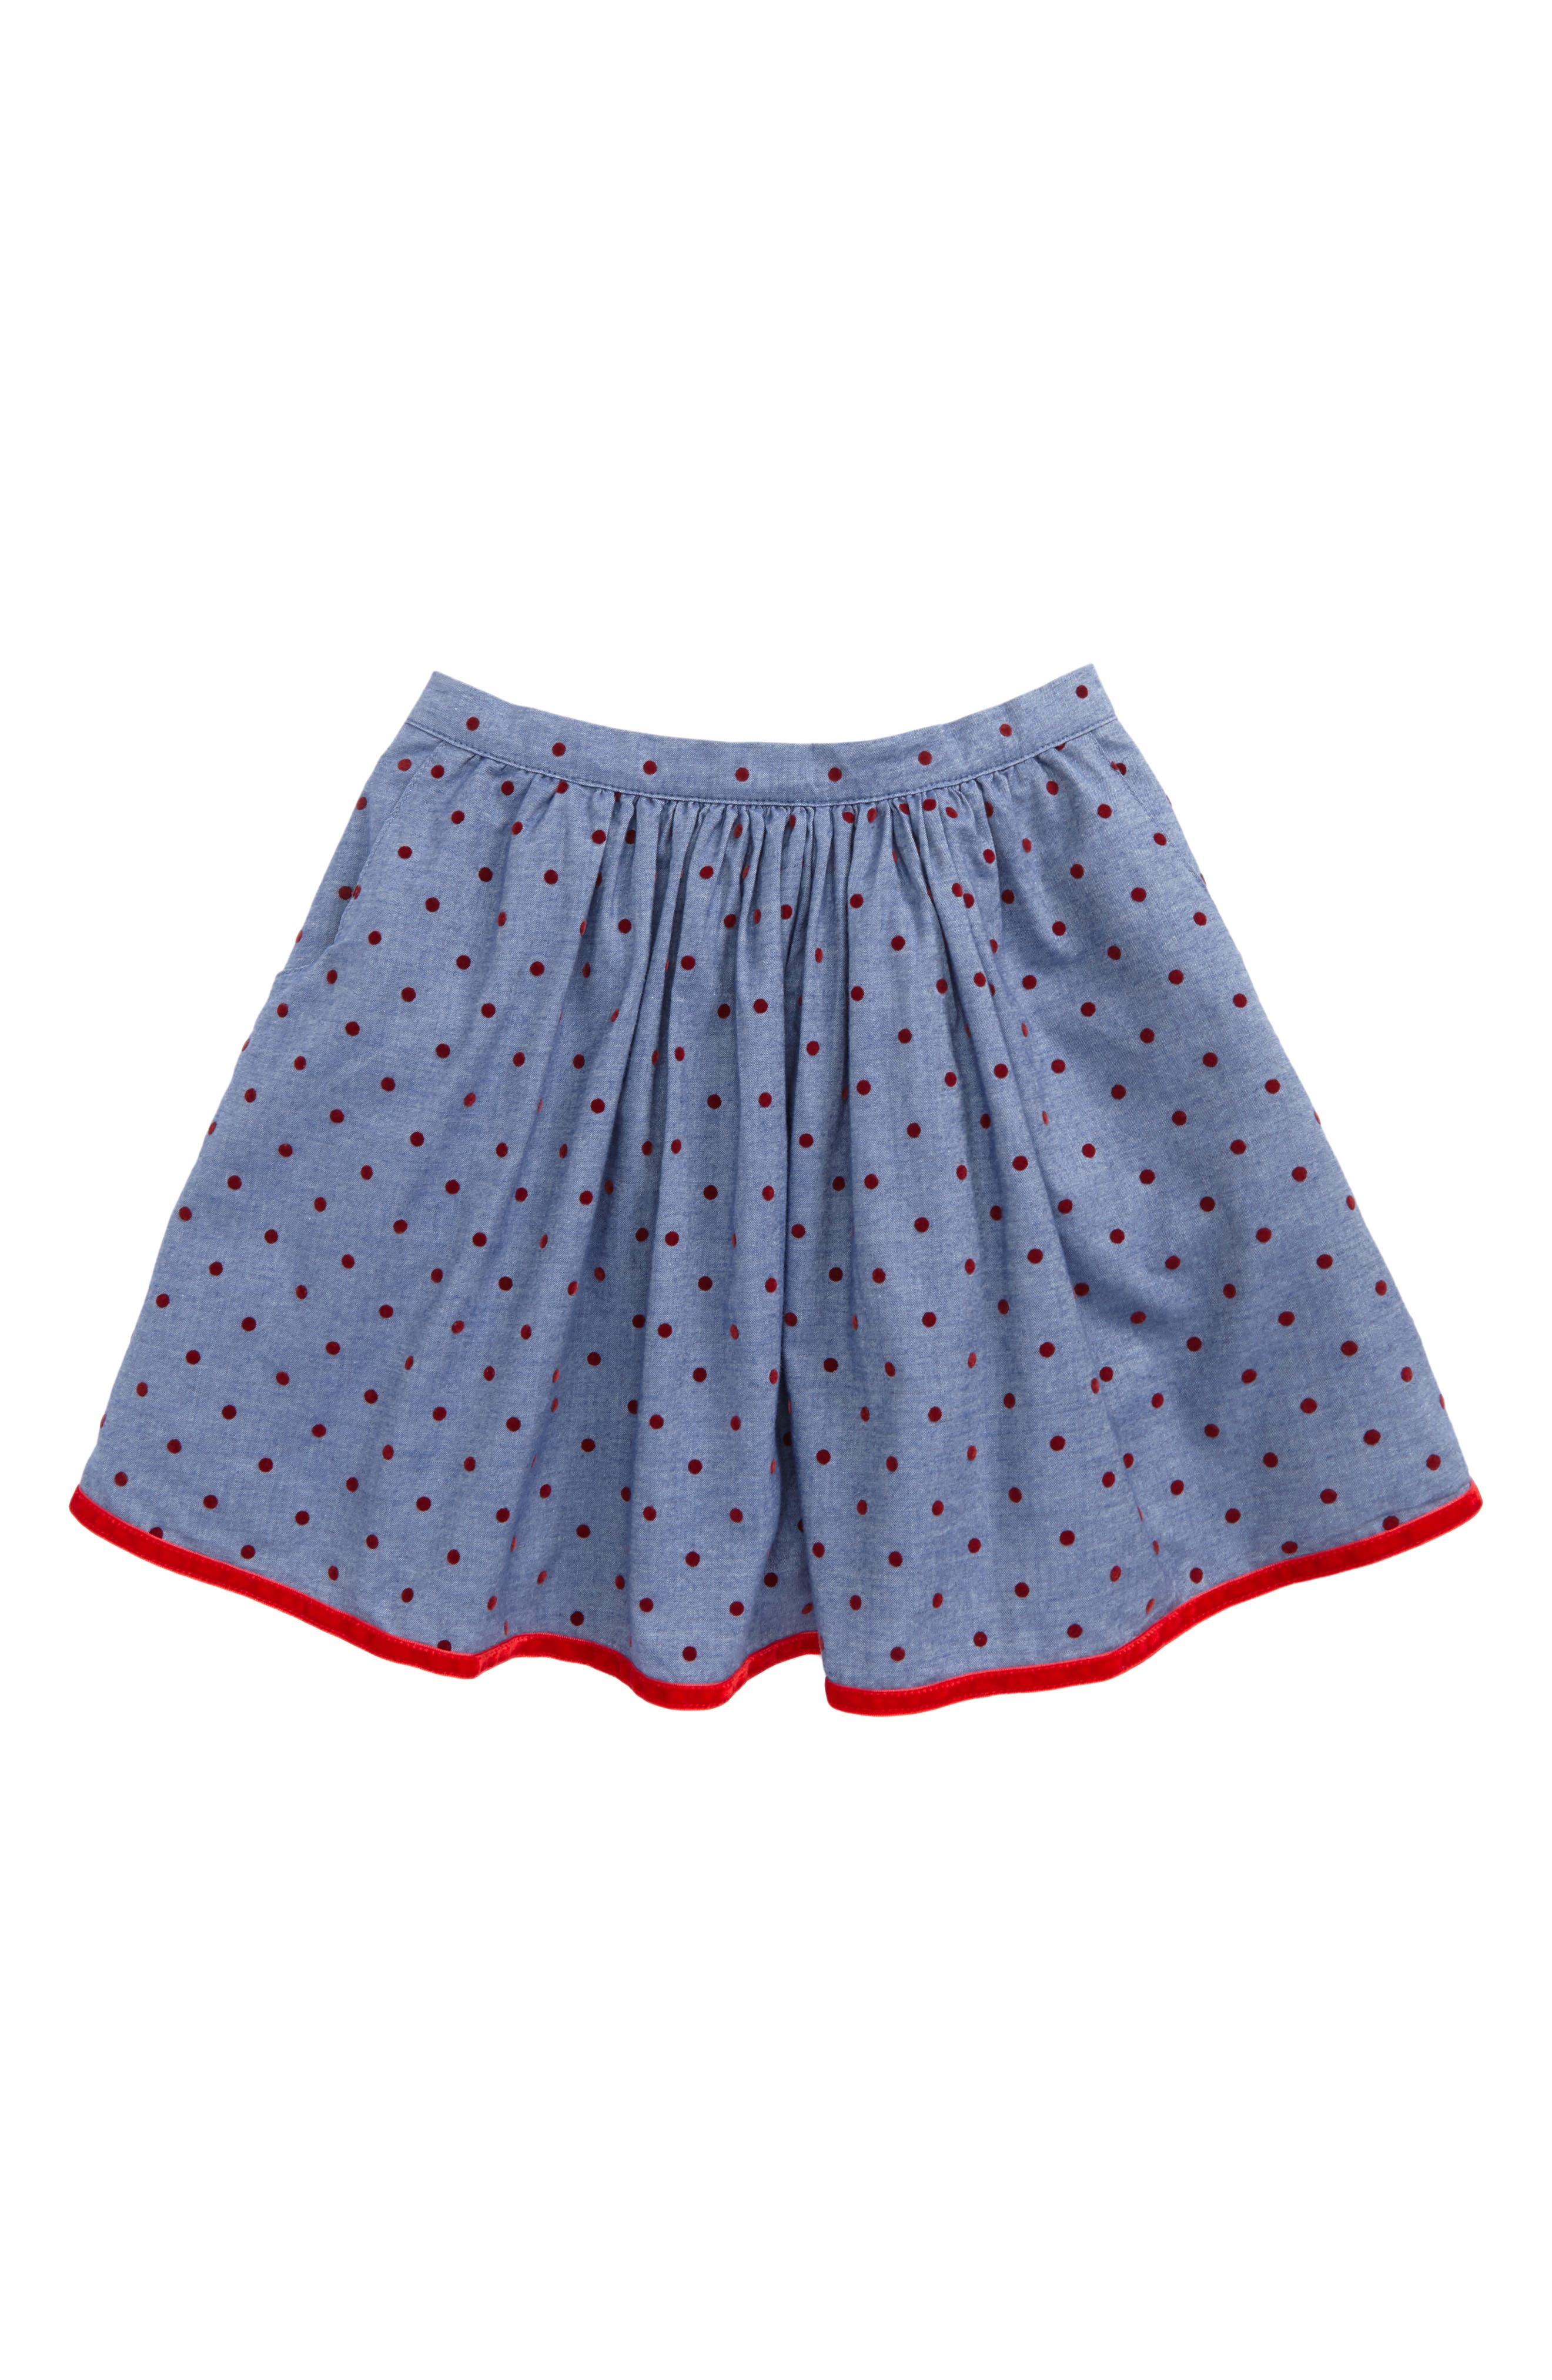 Pretty Twirly Skirt,                         Main,                         color, Chambray/ Ladybird Red Spot